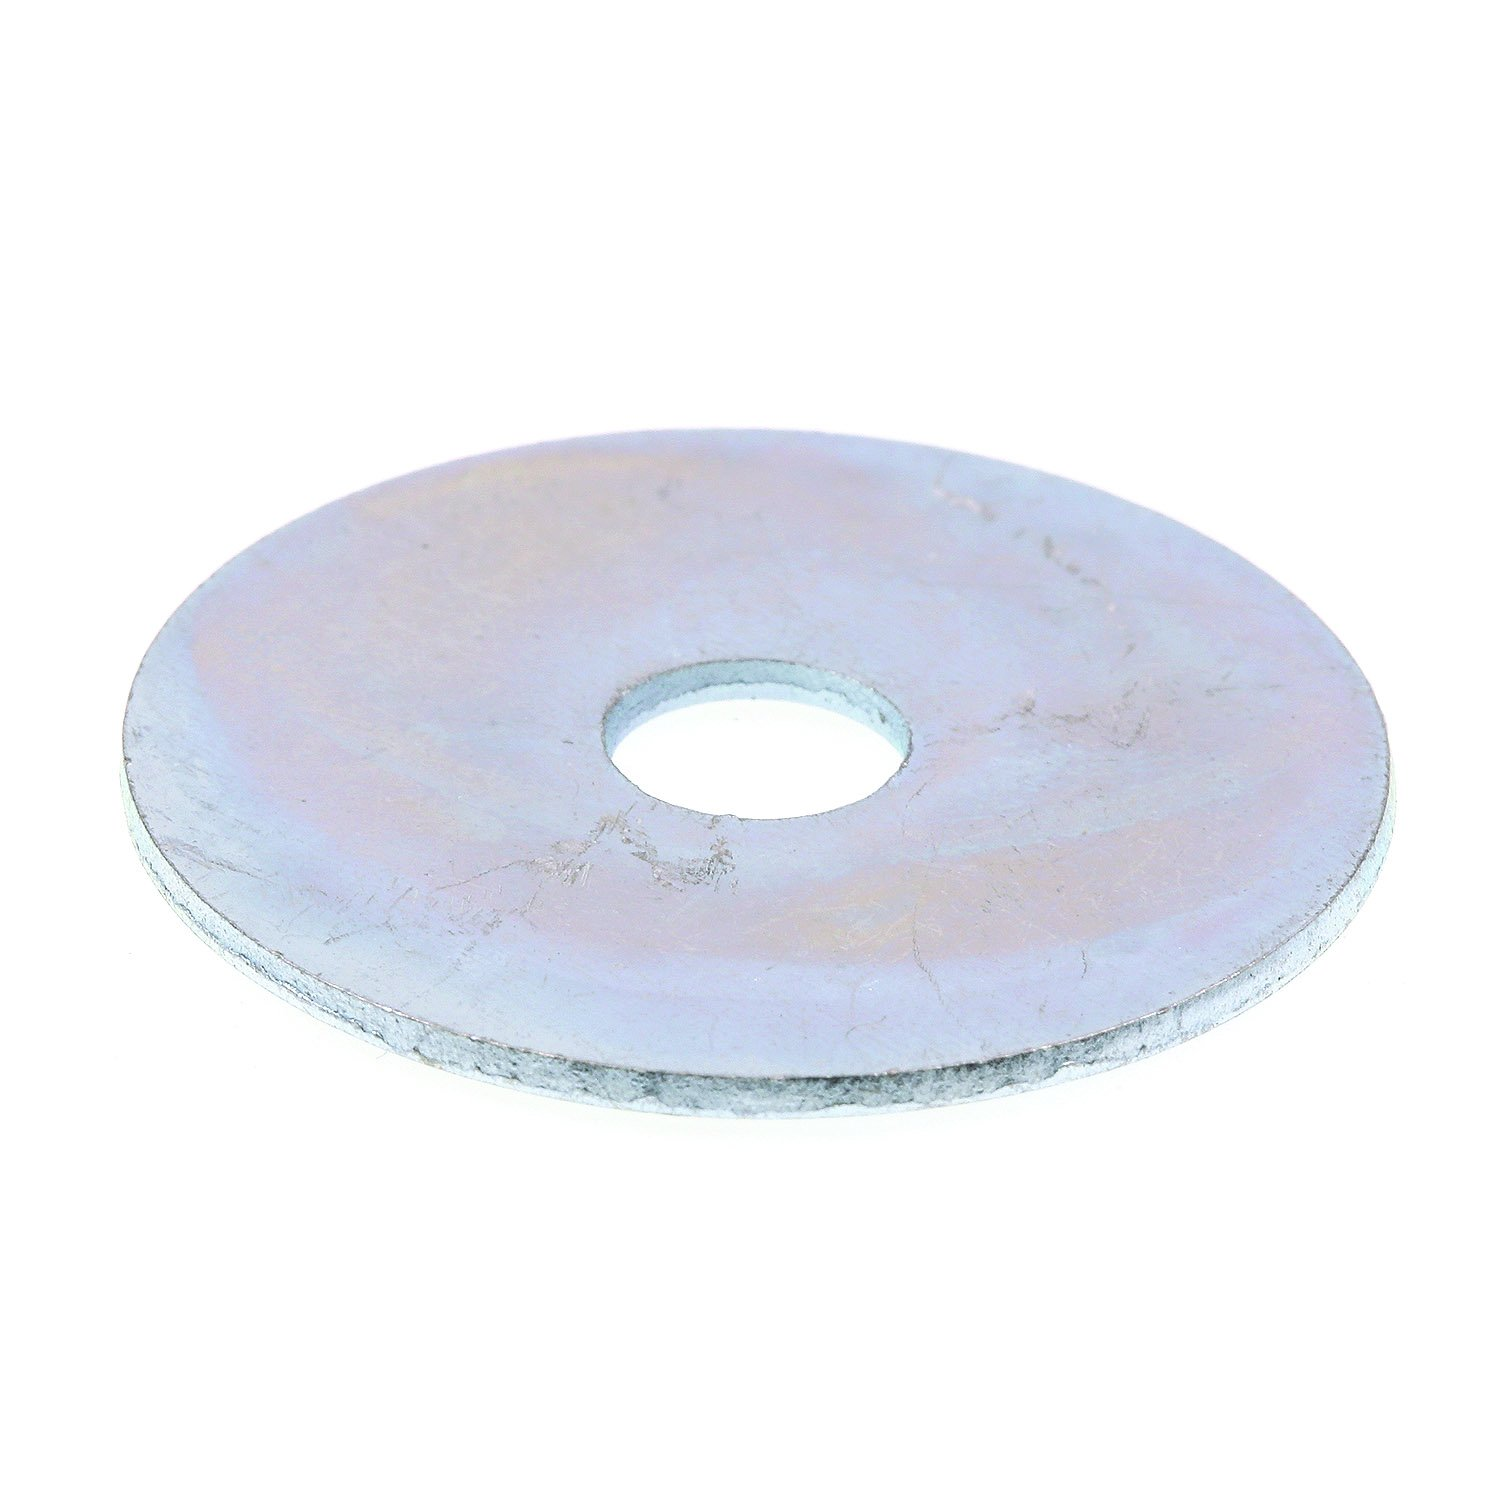 Prime-Line 9081412 Fender Washer, 5/16 in X 1-1/2 in, Zinc Plated Steel, Pack of 25